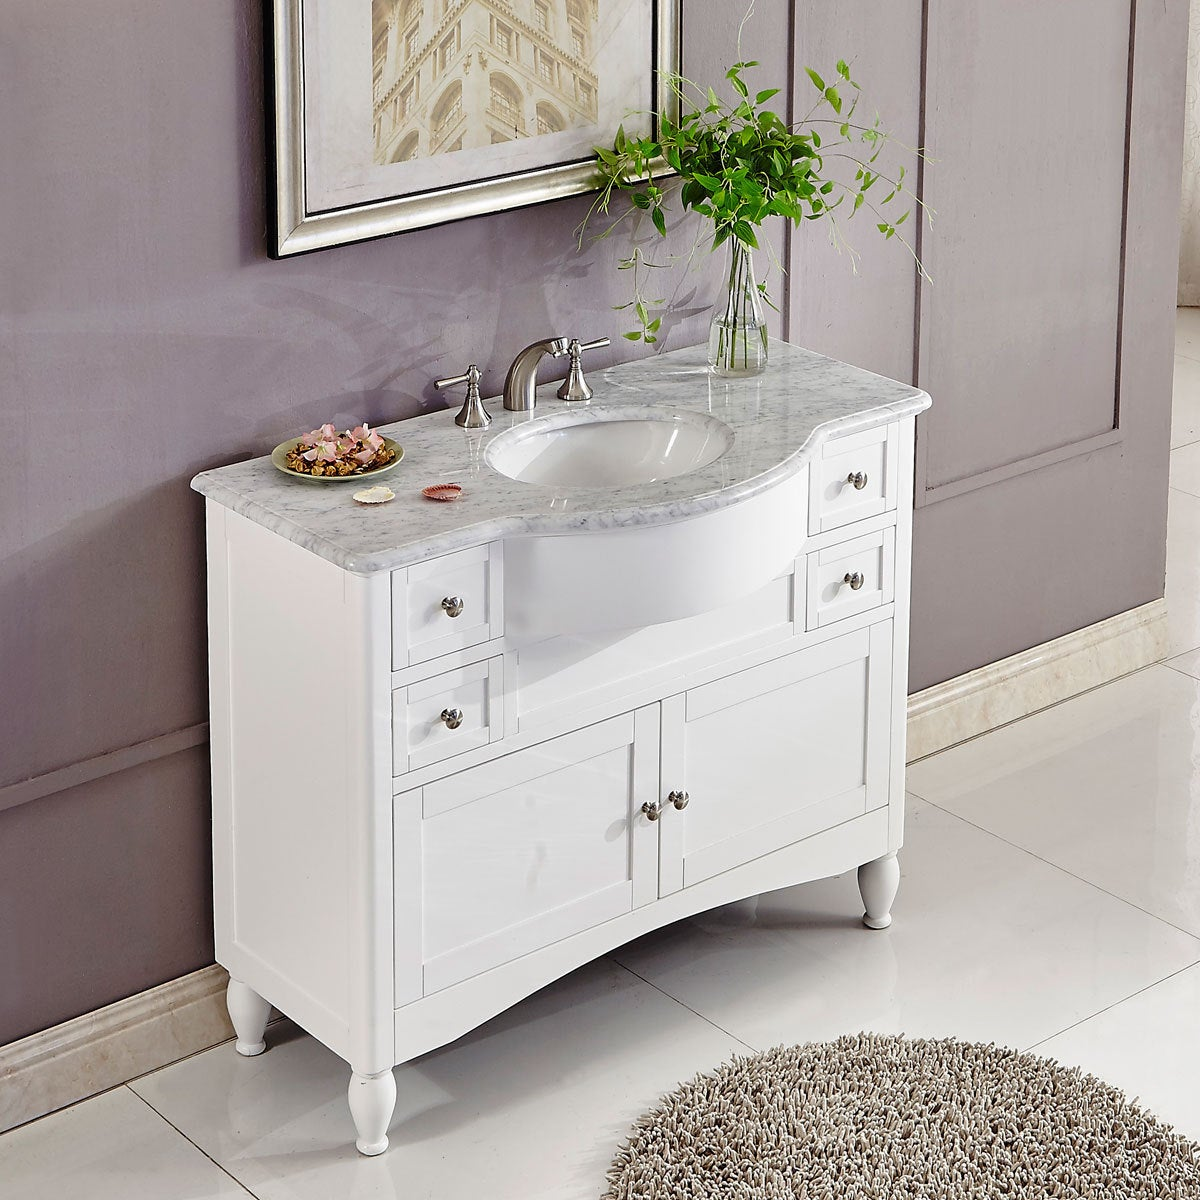 contemporary bathroom furniture. Silkroad Exclusive 45-inch Contemporary Bathroom Vanity Single Sink Cabinet - Free Shipping Today Overstock 21007434 Furniture S